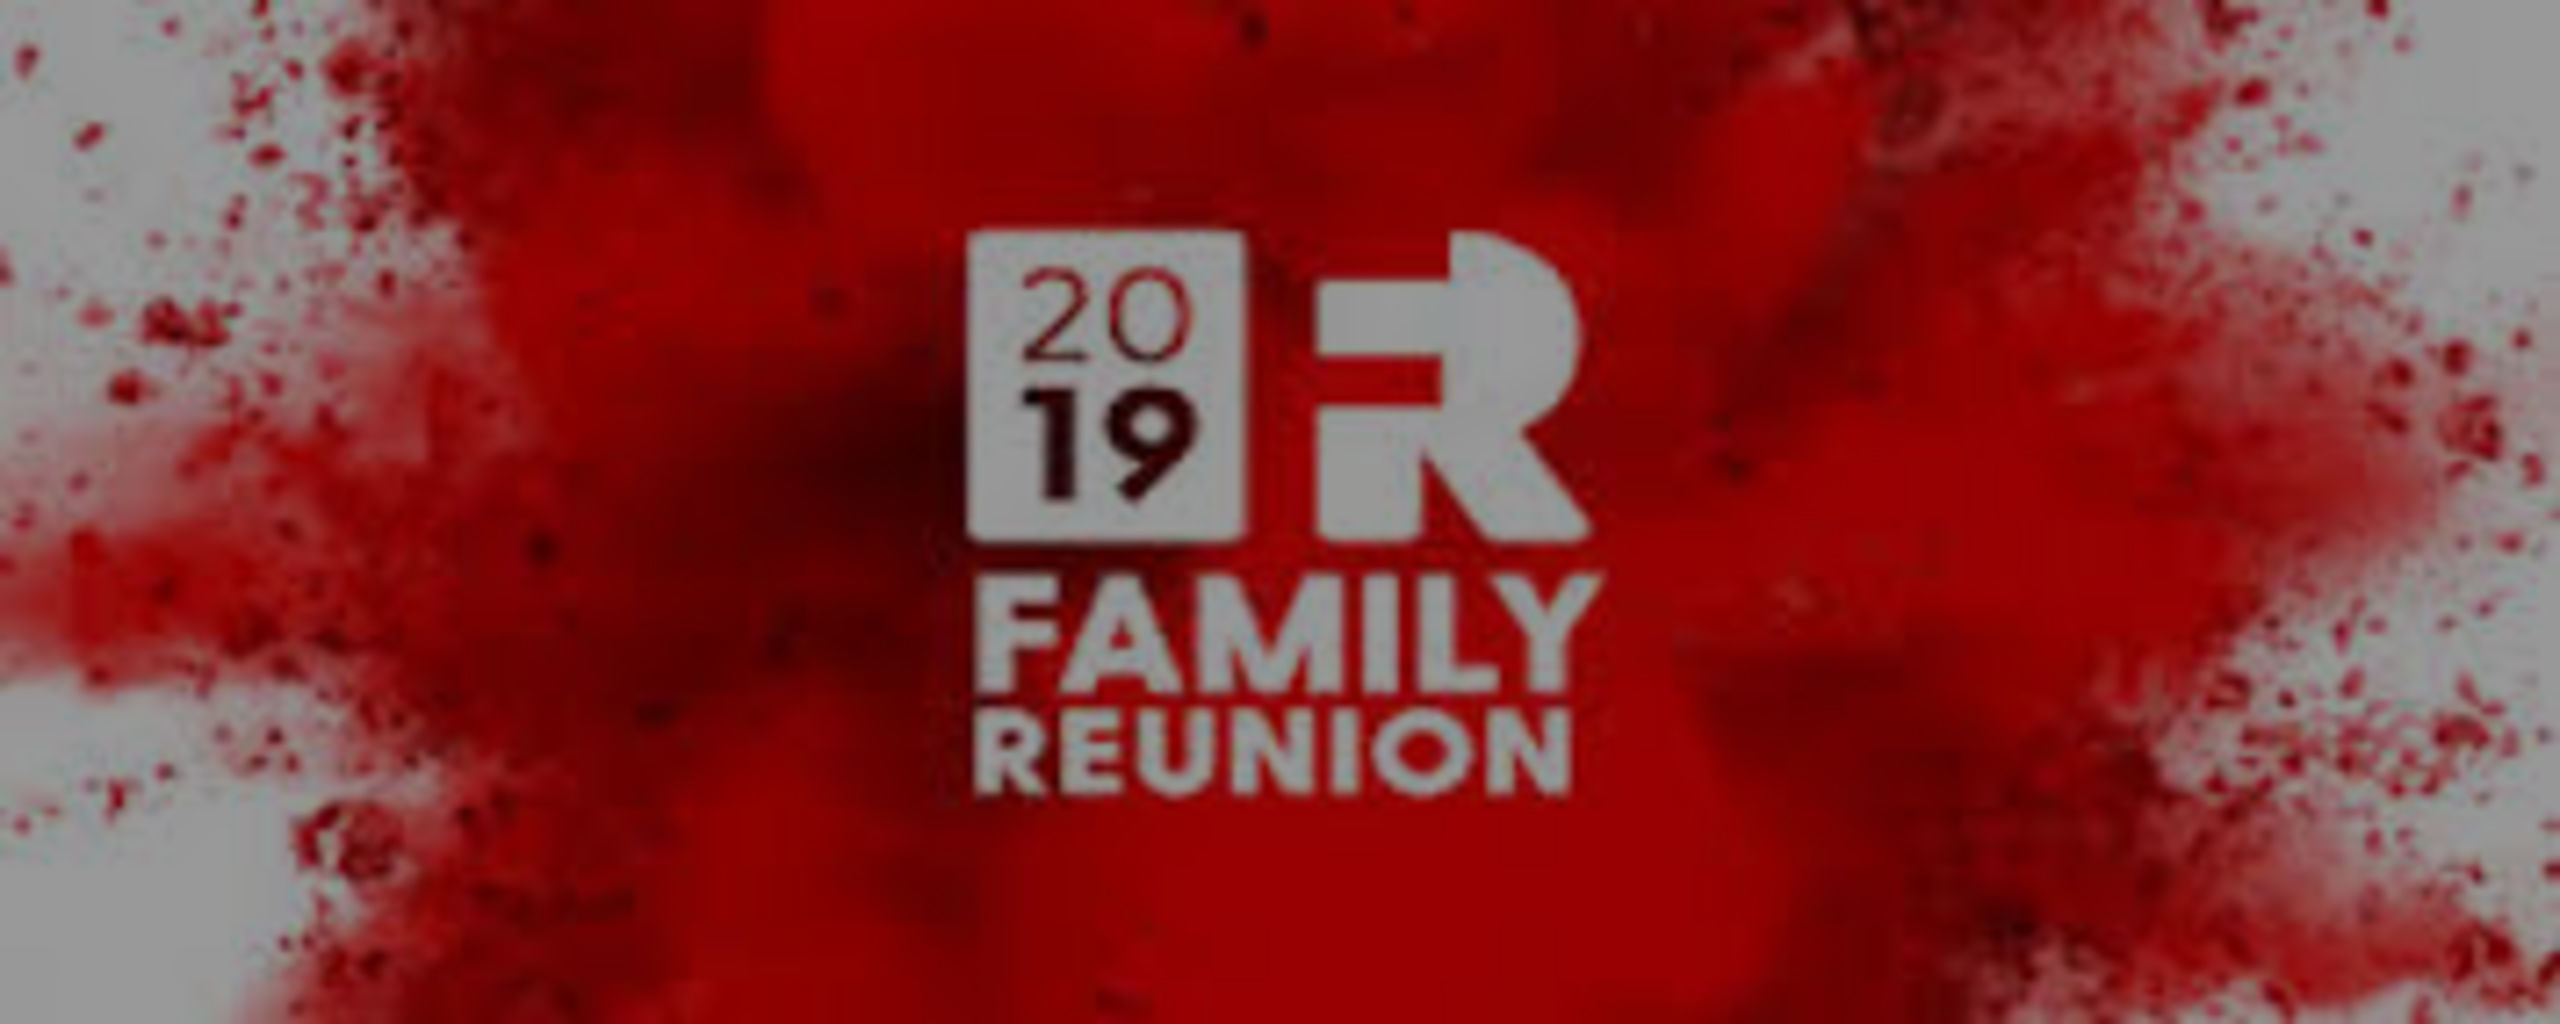 3 Takeaways From Keller Williams Family Reunion